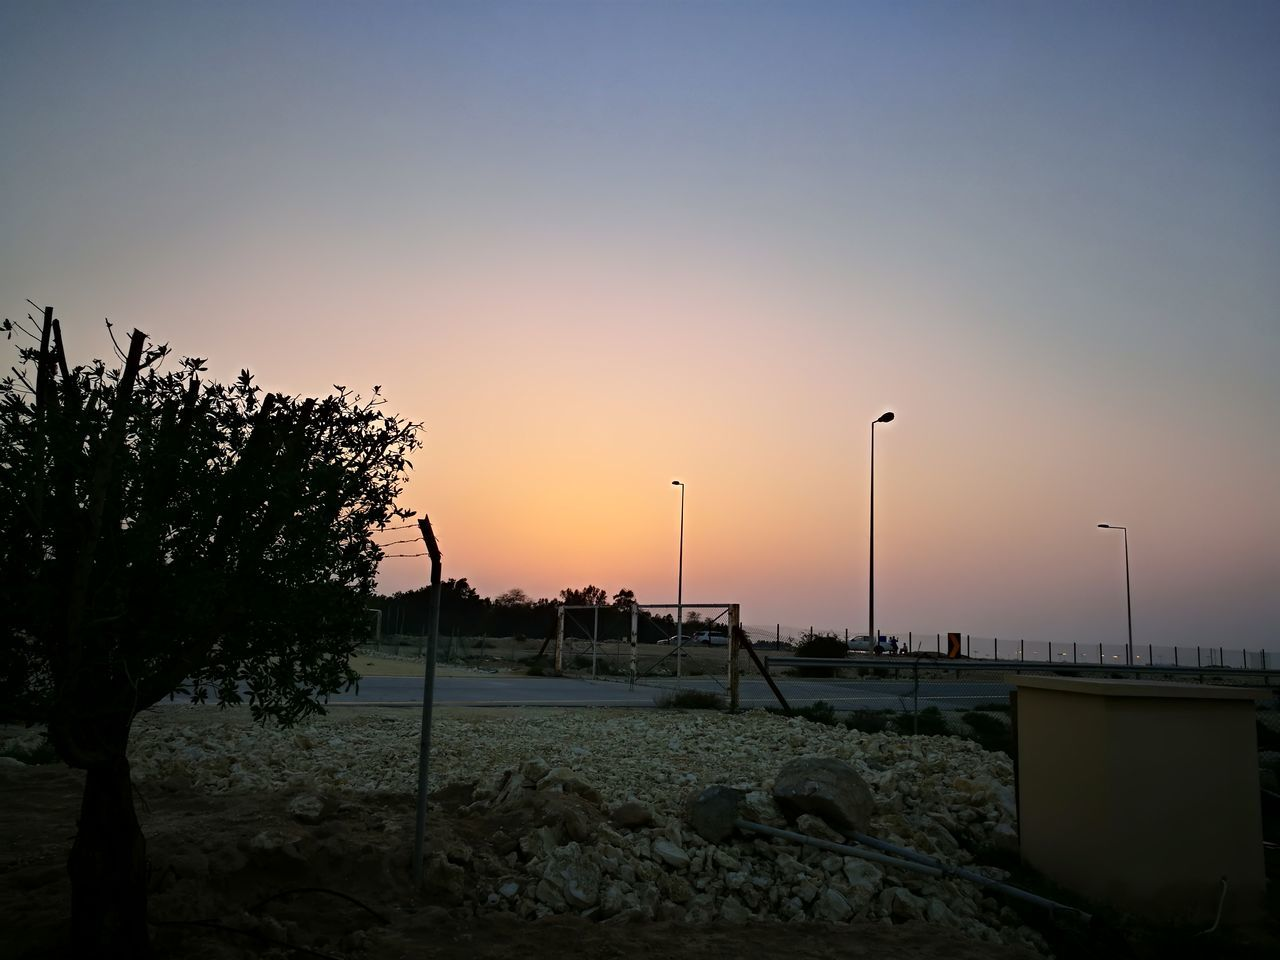 sunset, sky, nature, no people, beauty in nature, scenics, outdoors, tree, clear sky, wind turbine, day